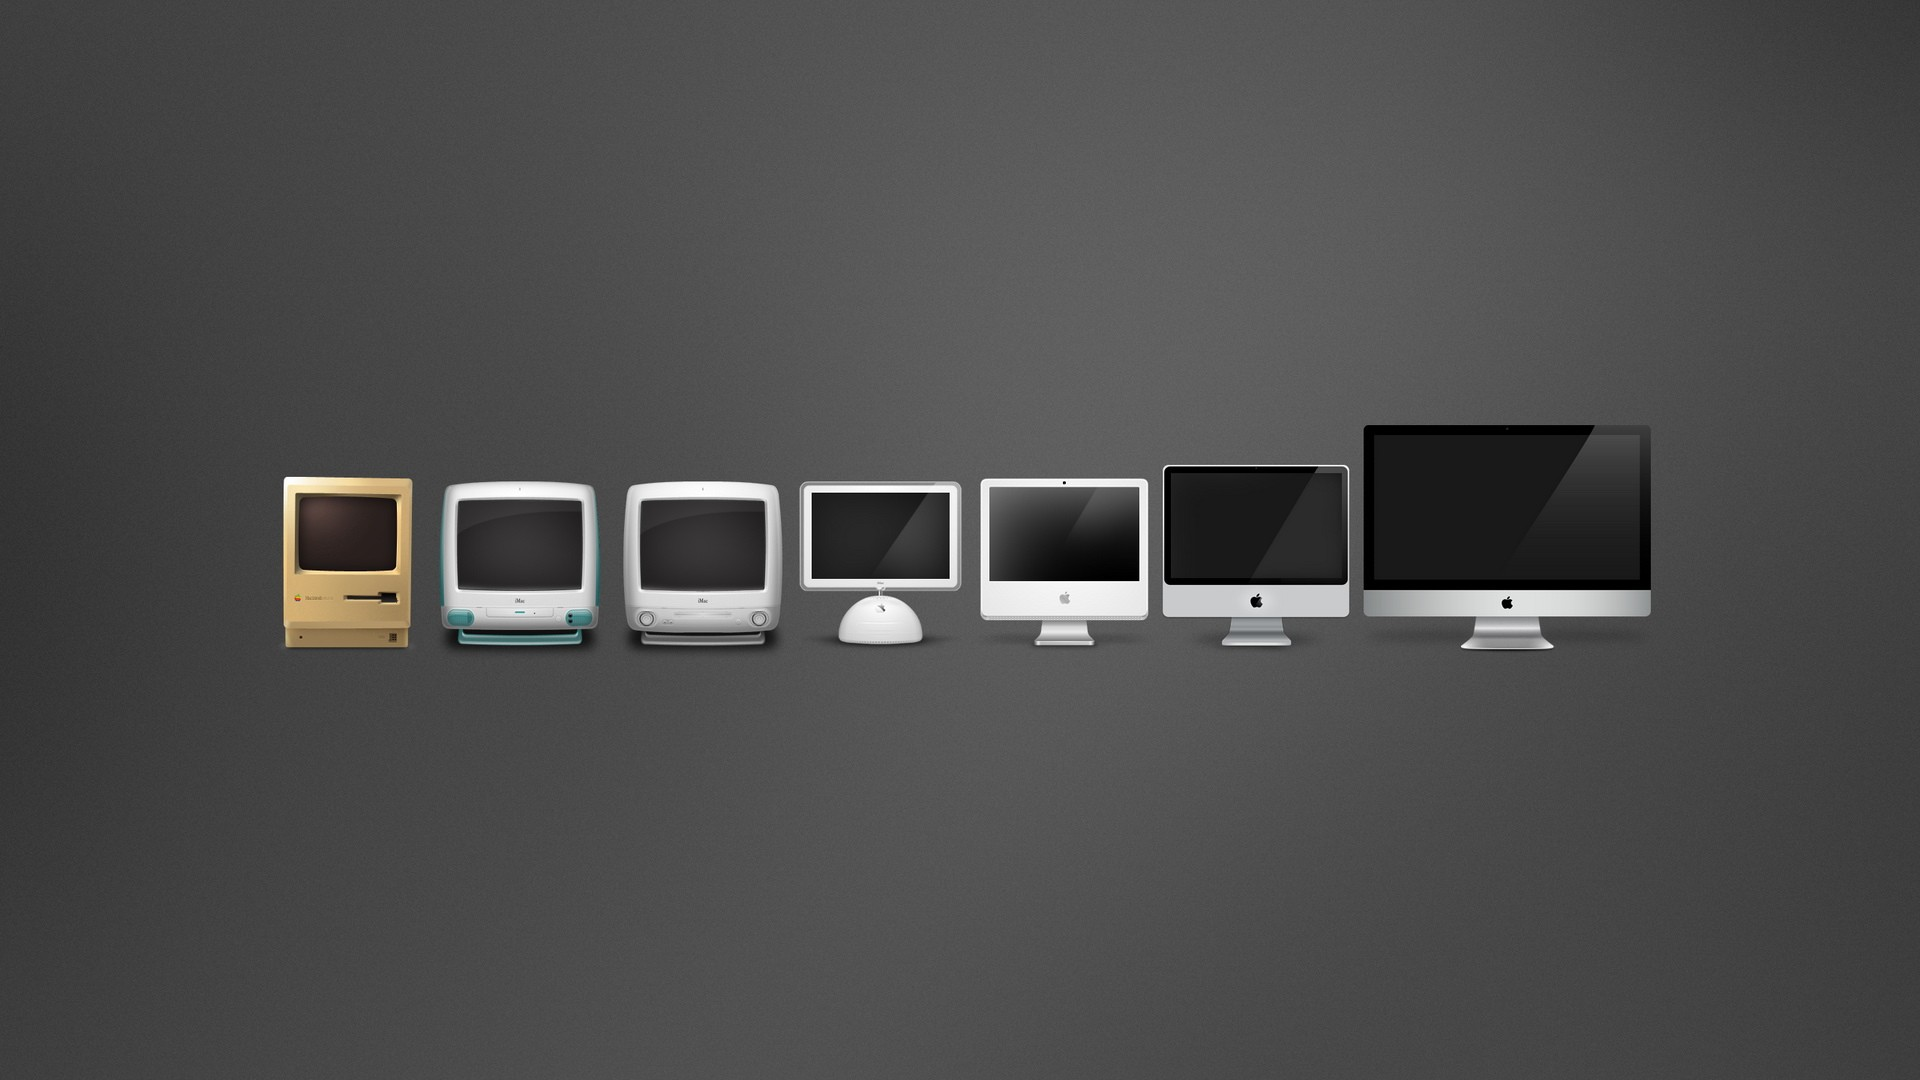 Macintosh Wallpapers 1920x1080 | B.SCB WP&BG Collection